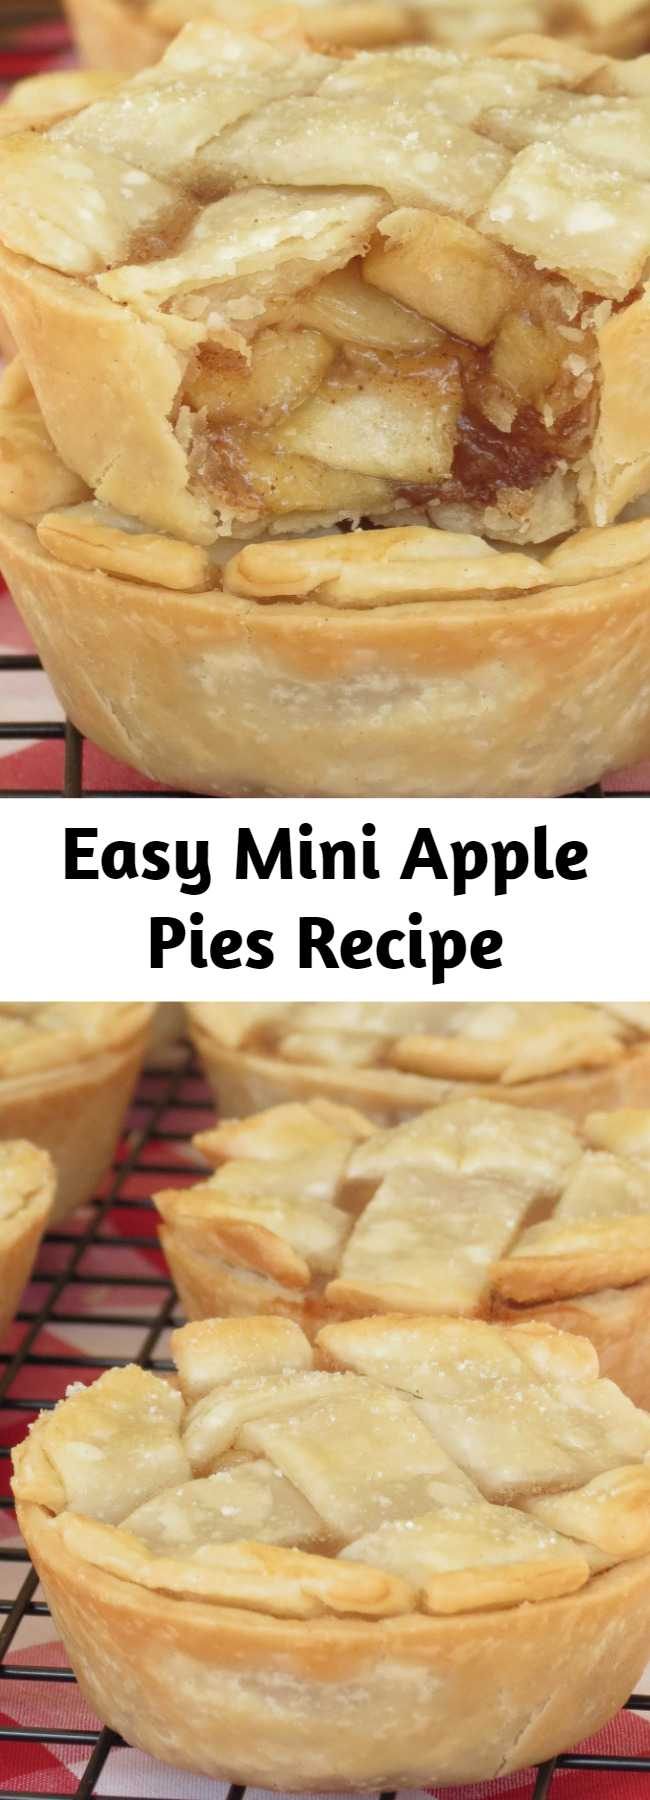 Easy Mini Apple Pies Recipe - These adorable little pies are super easy to make and the filling is so delicious, everyone will love them!